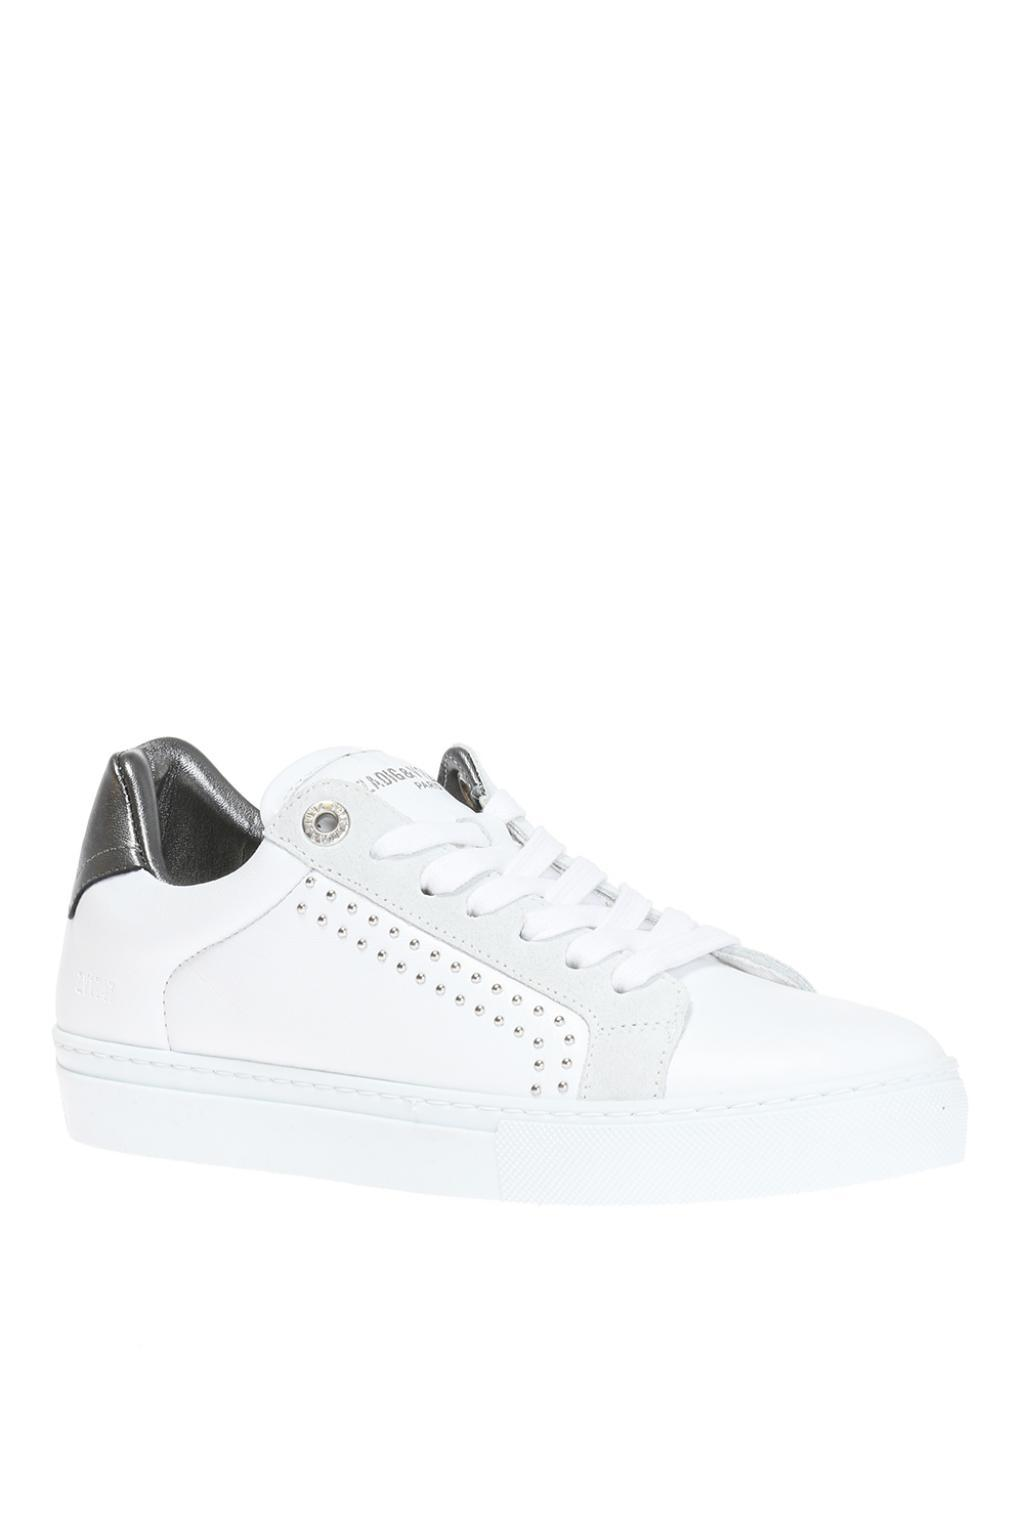 Zadig & Voltaire Leather 'skulls' Lace-up Sneakers in White